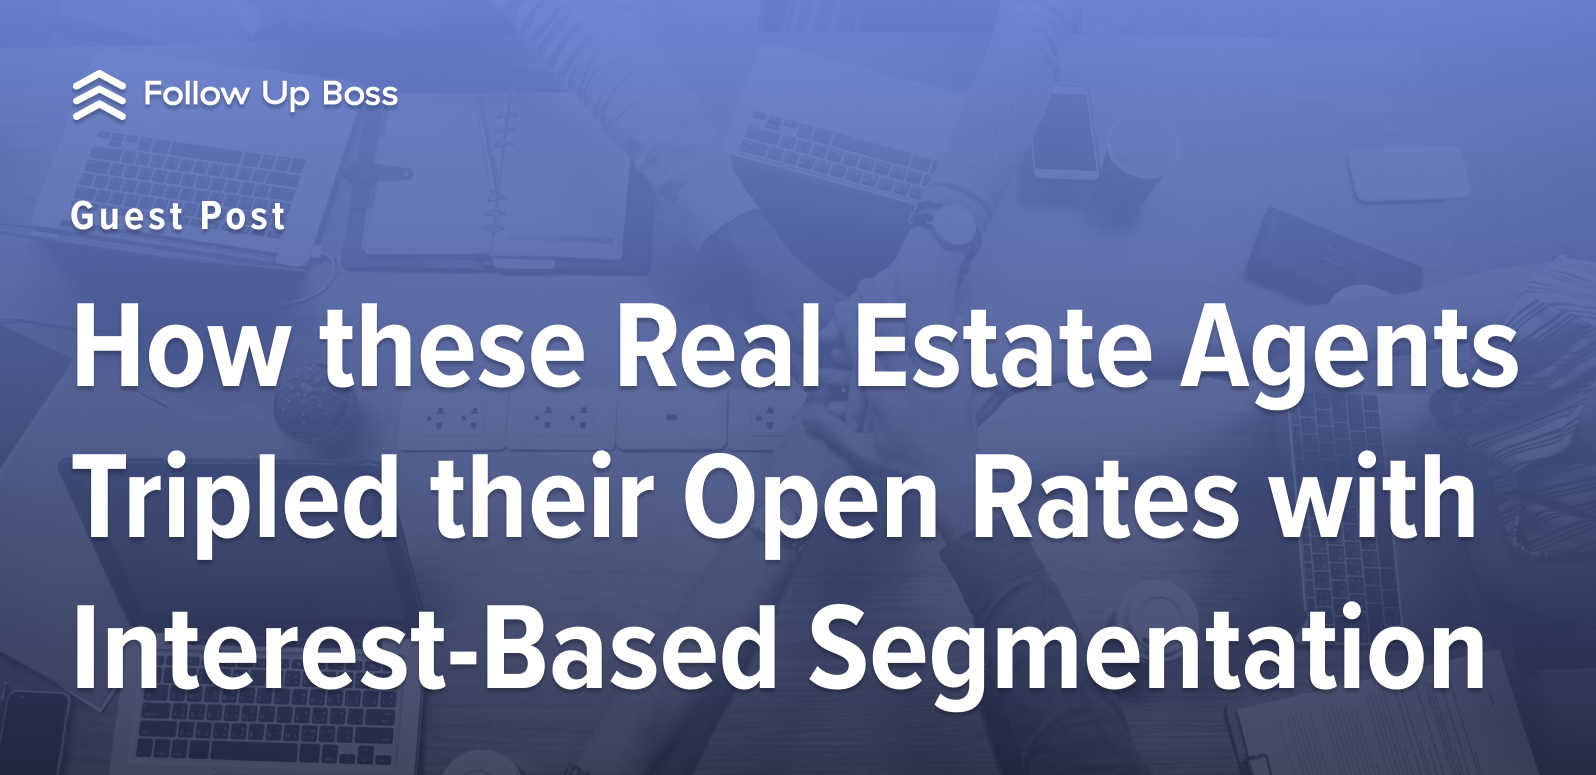 How these Real Estate Agents Tripled their Open Rates with Interest-Based Segmentation